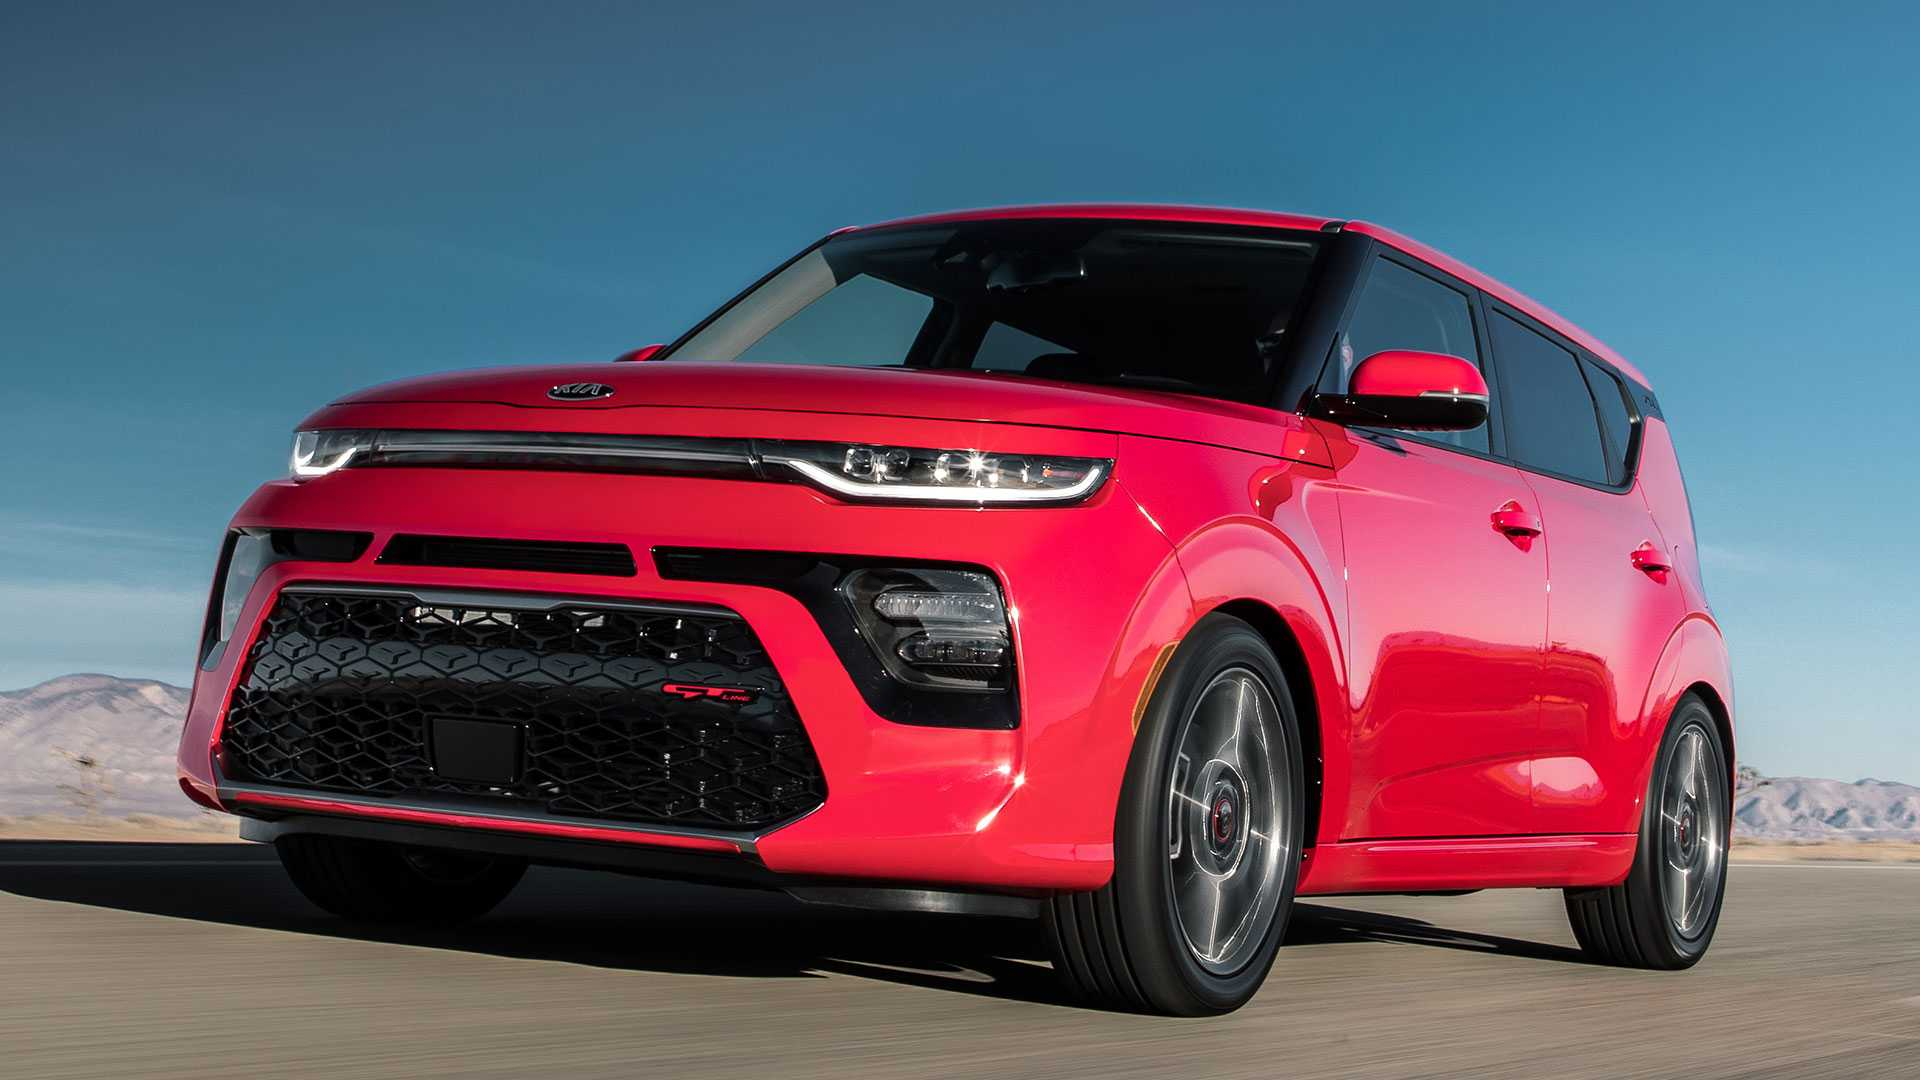 Most Expensive 2020 Kia Soul Costs $30,825 - 2022 Kia Soul Hatchback Engine Performance, Release Date